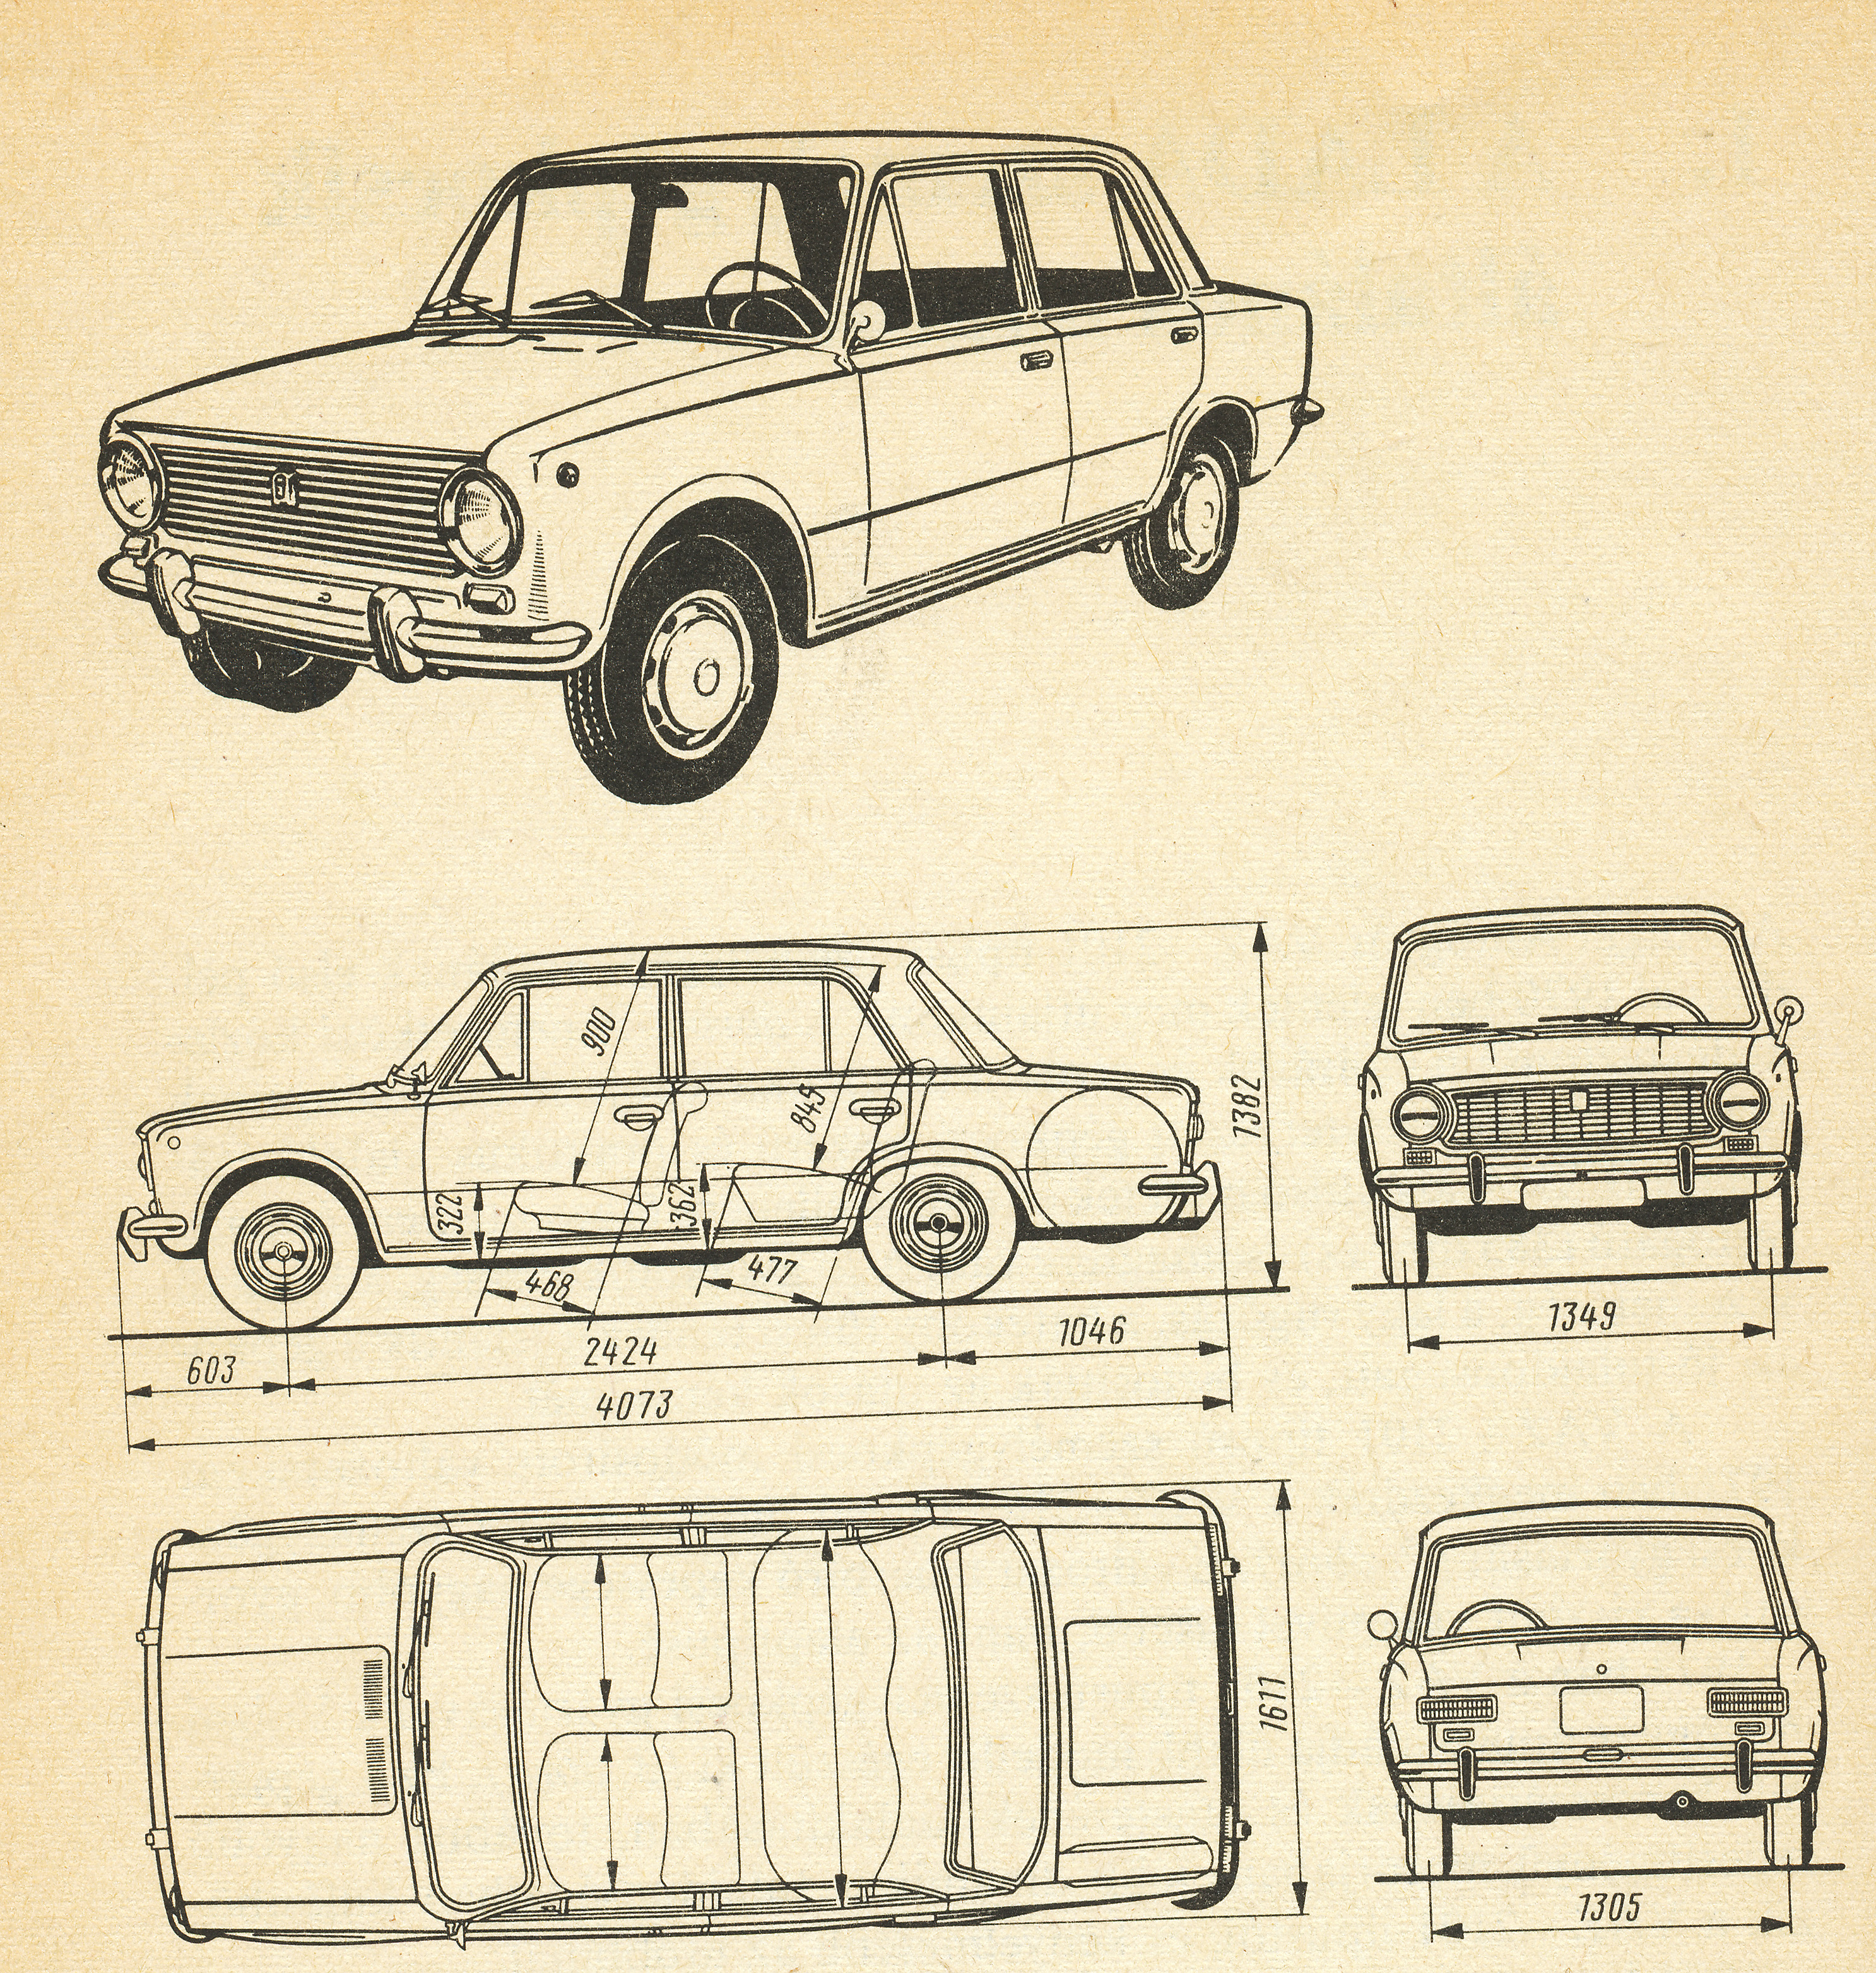 Car texture in a paper lada textures for photoshop free download car texture in a paper lada free malvernweather Gallery